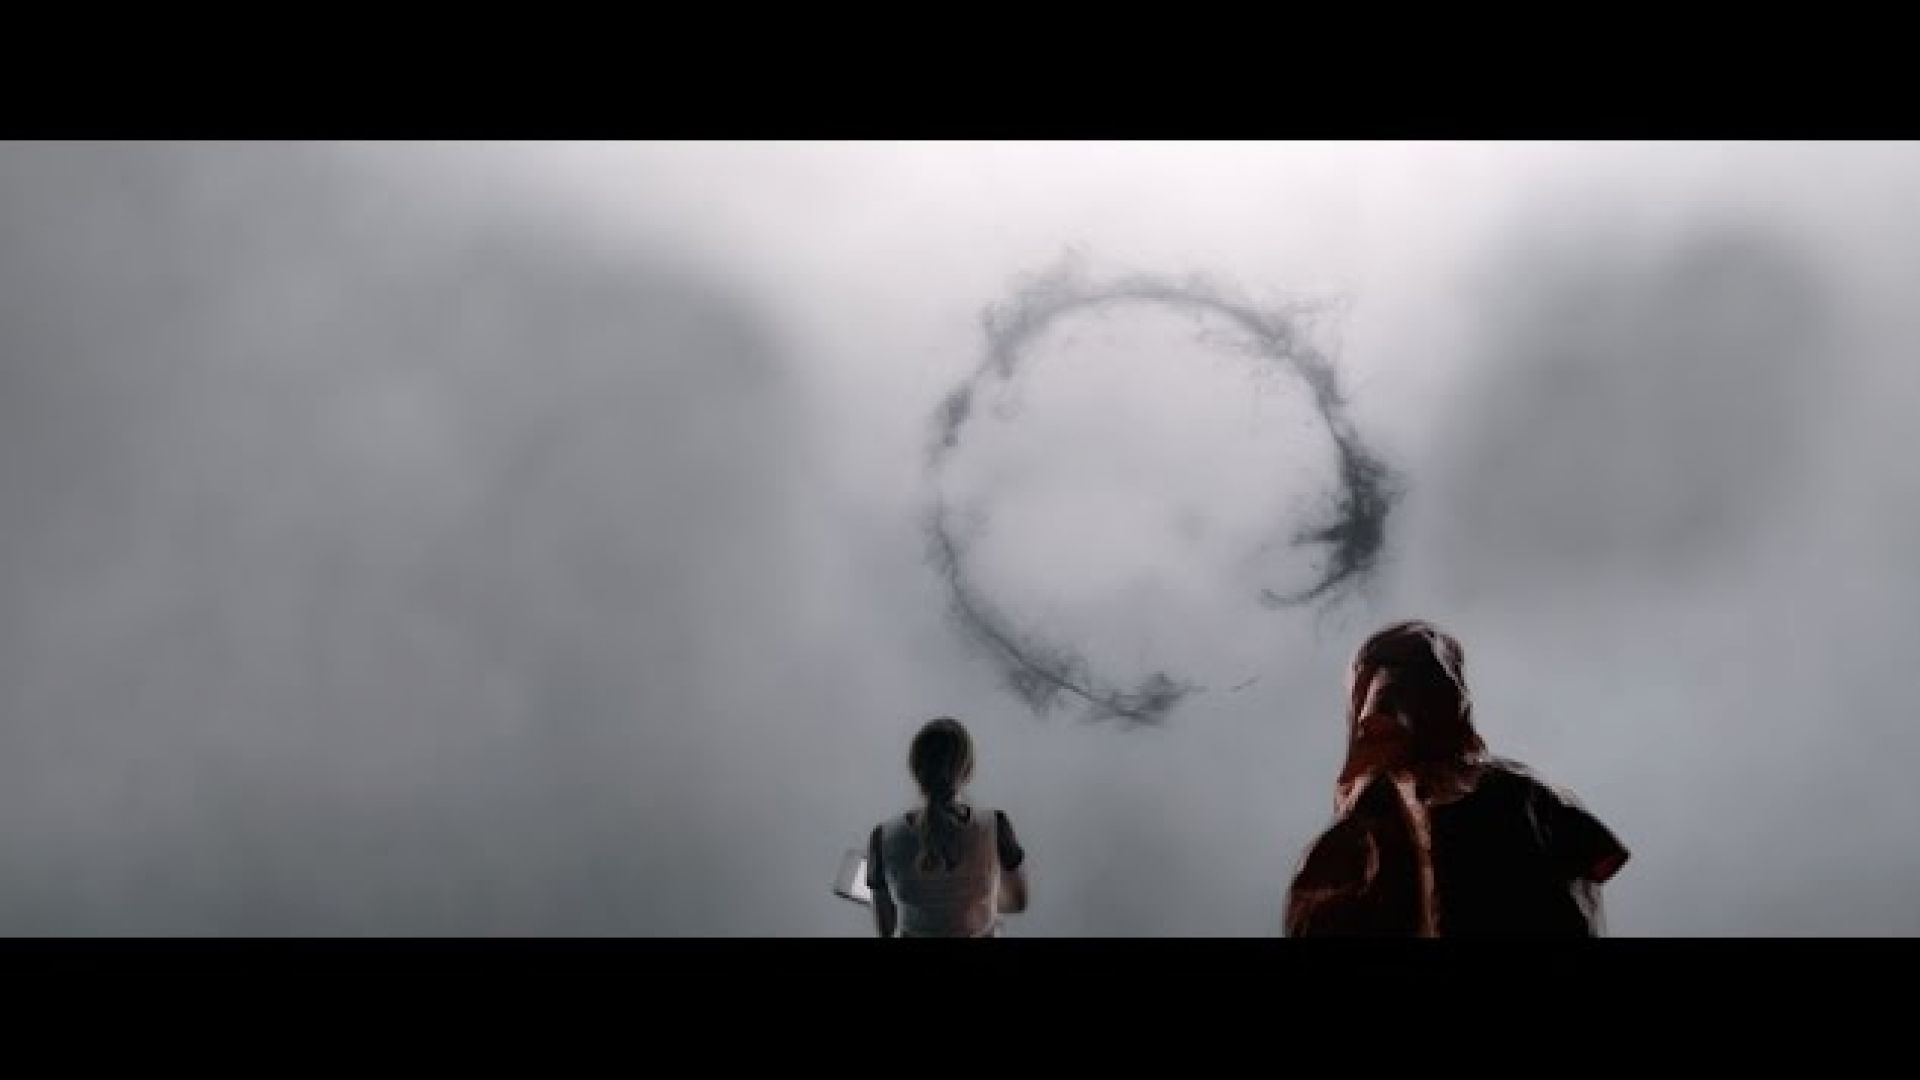 The Story of Arrival showcased in a new featurette